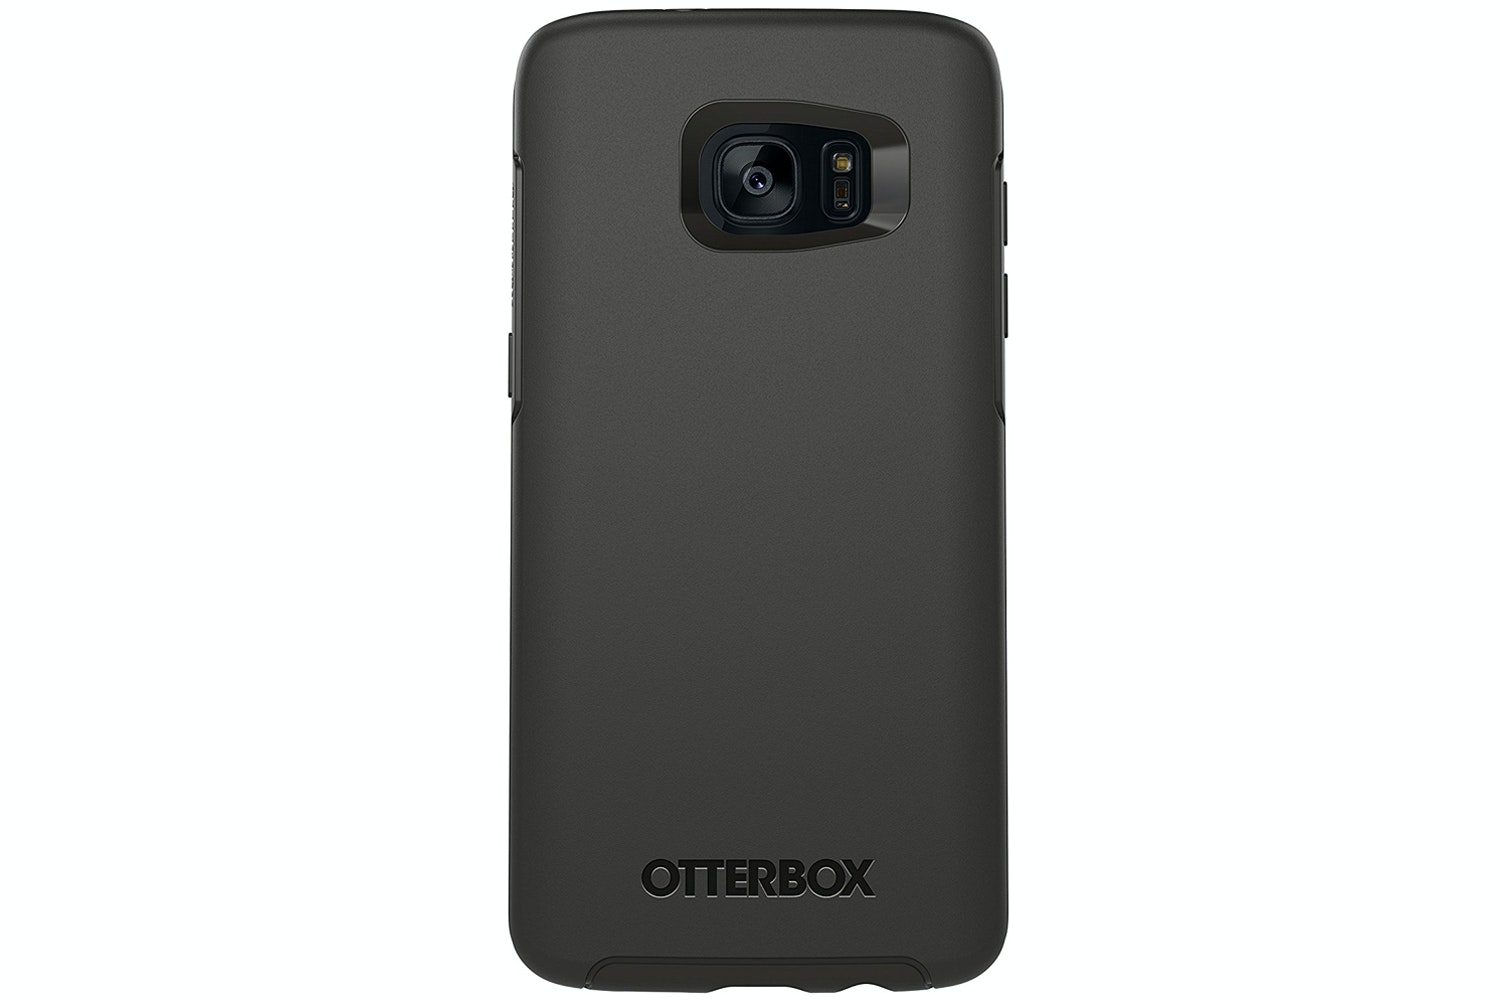 Otterbox Symmetry Case for Samsung Galaxy S7 Edge | Black